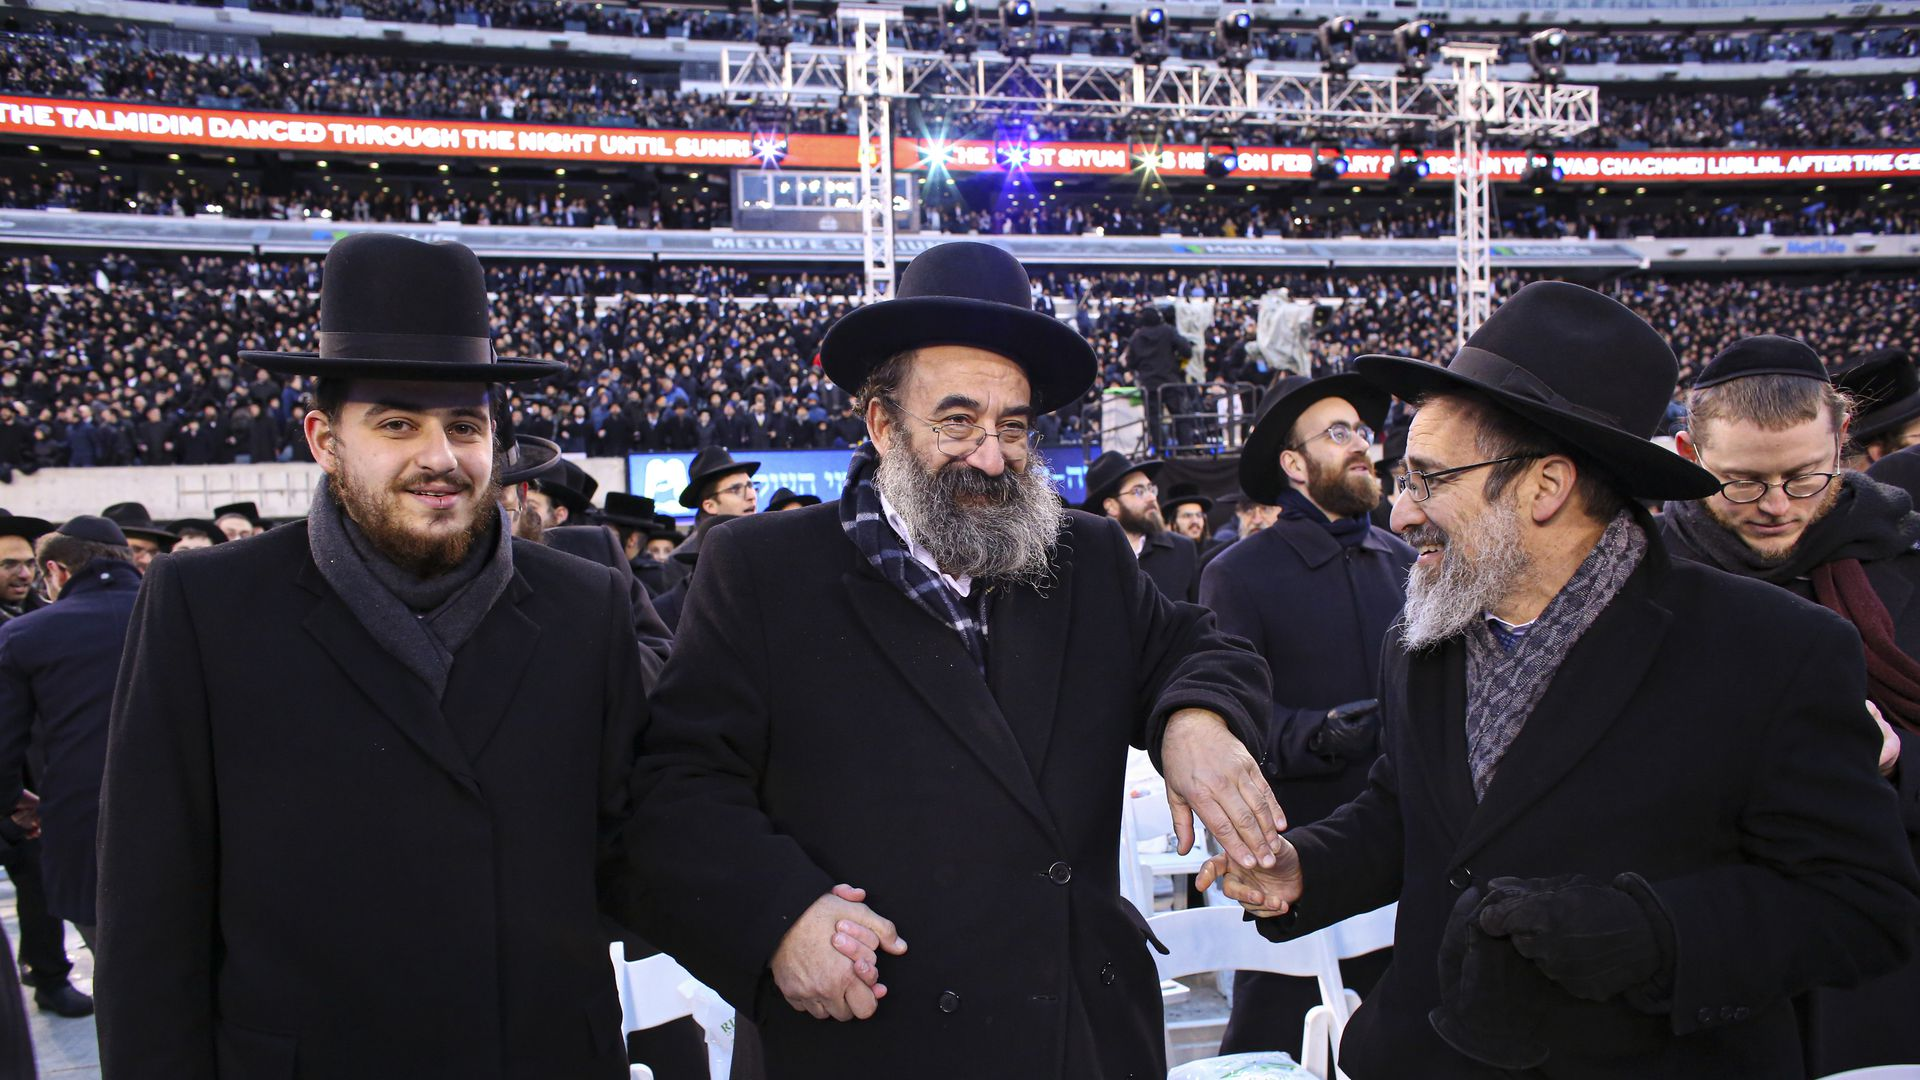 Men dance as they gather with others in MetLife Stadium on January 1, 2020, in East Rutherford, New Jersey